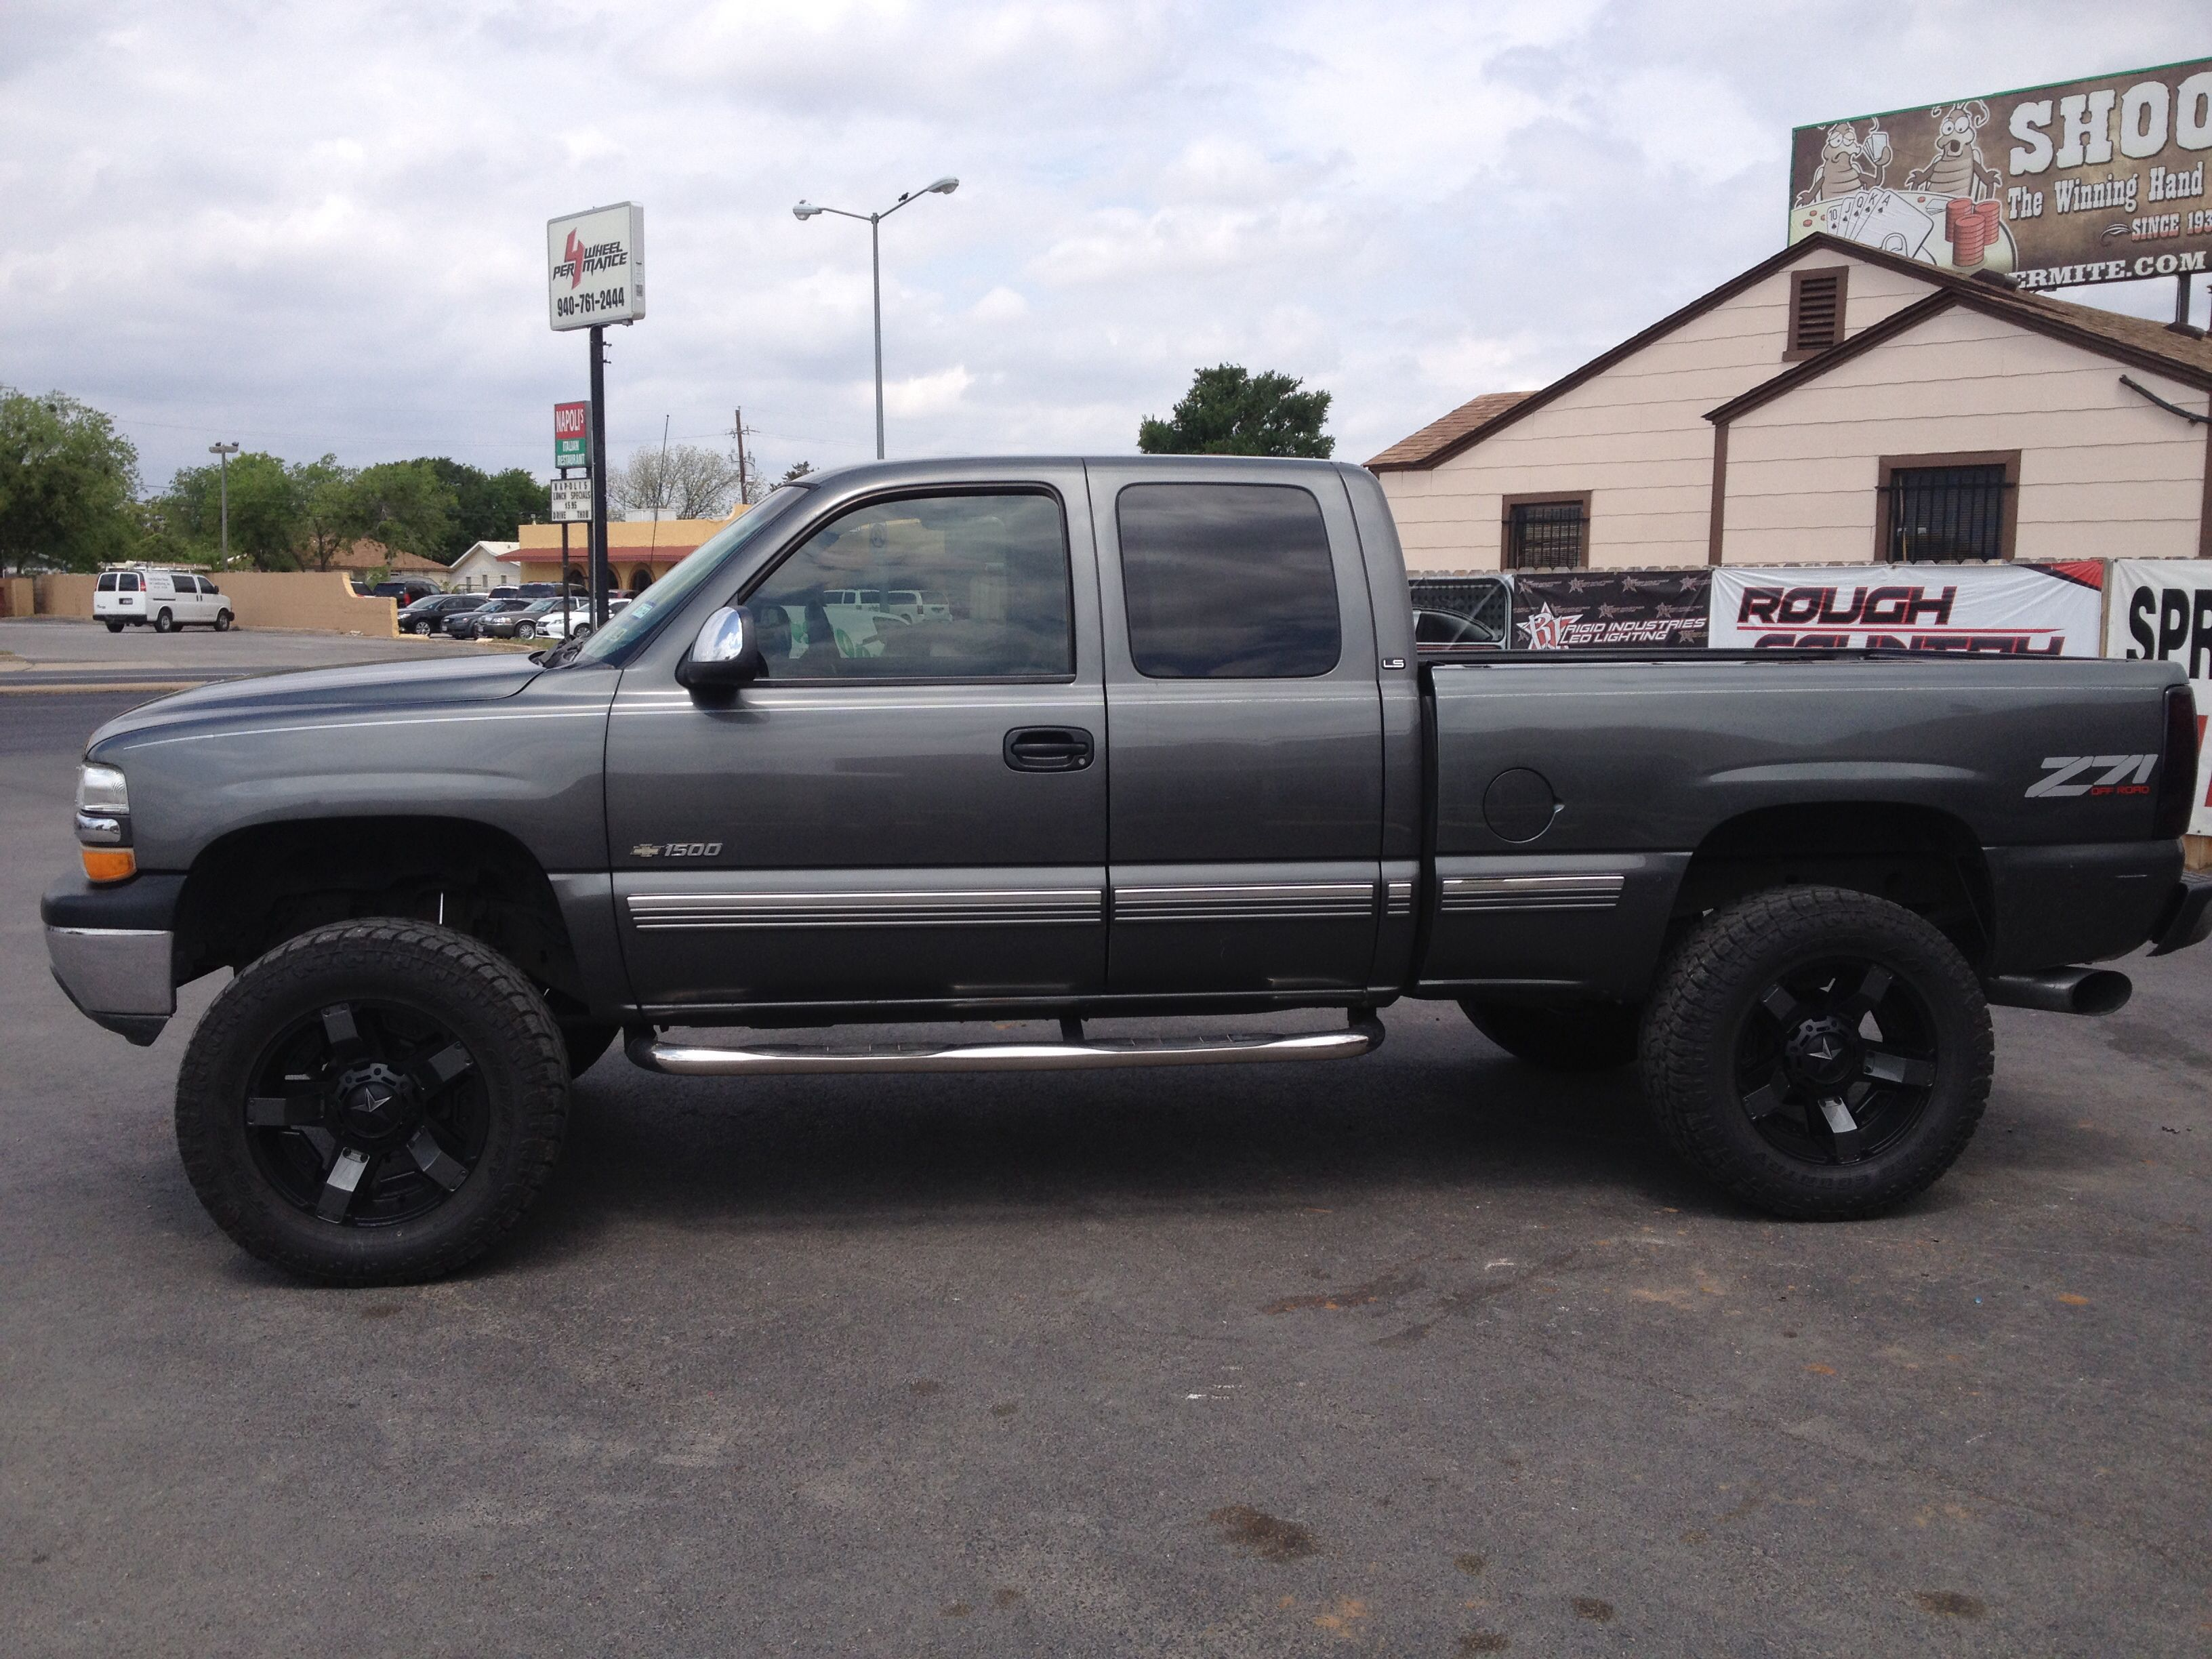 Pin By Jacob Parish On Project Photos Trucks Chevy Trucks Chevy Trucks Silverado